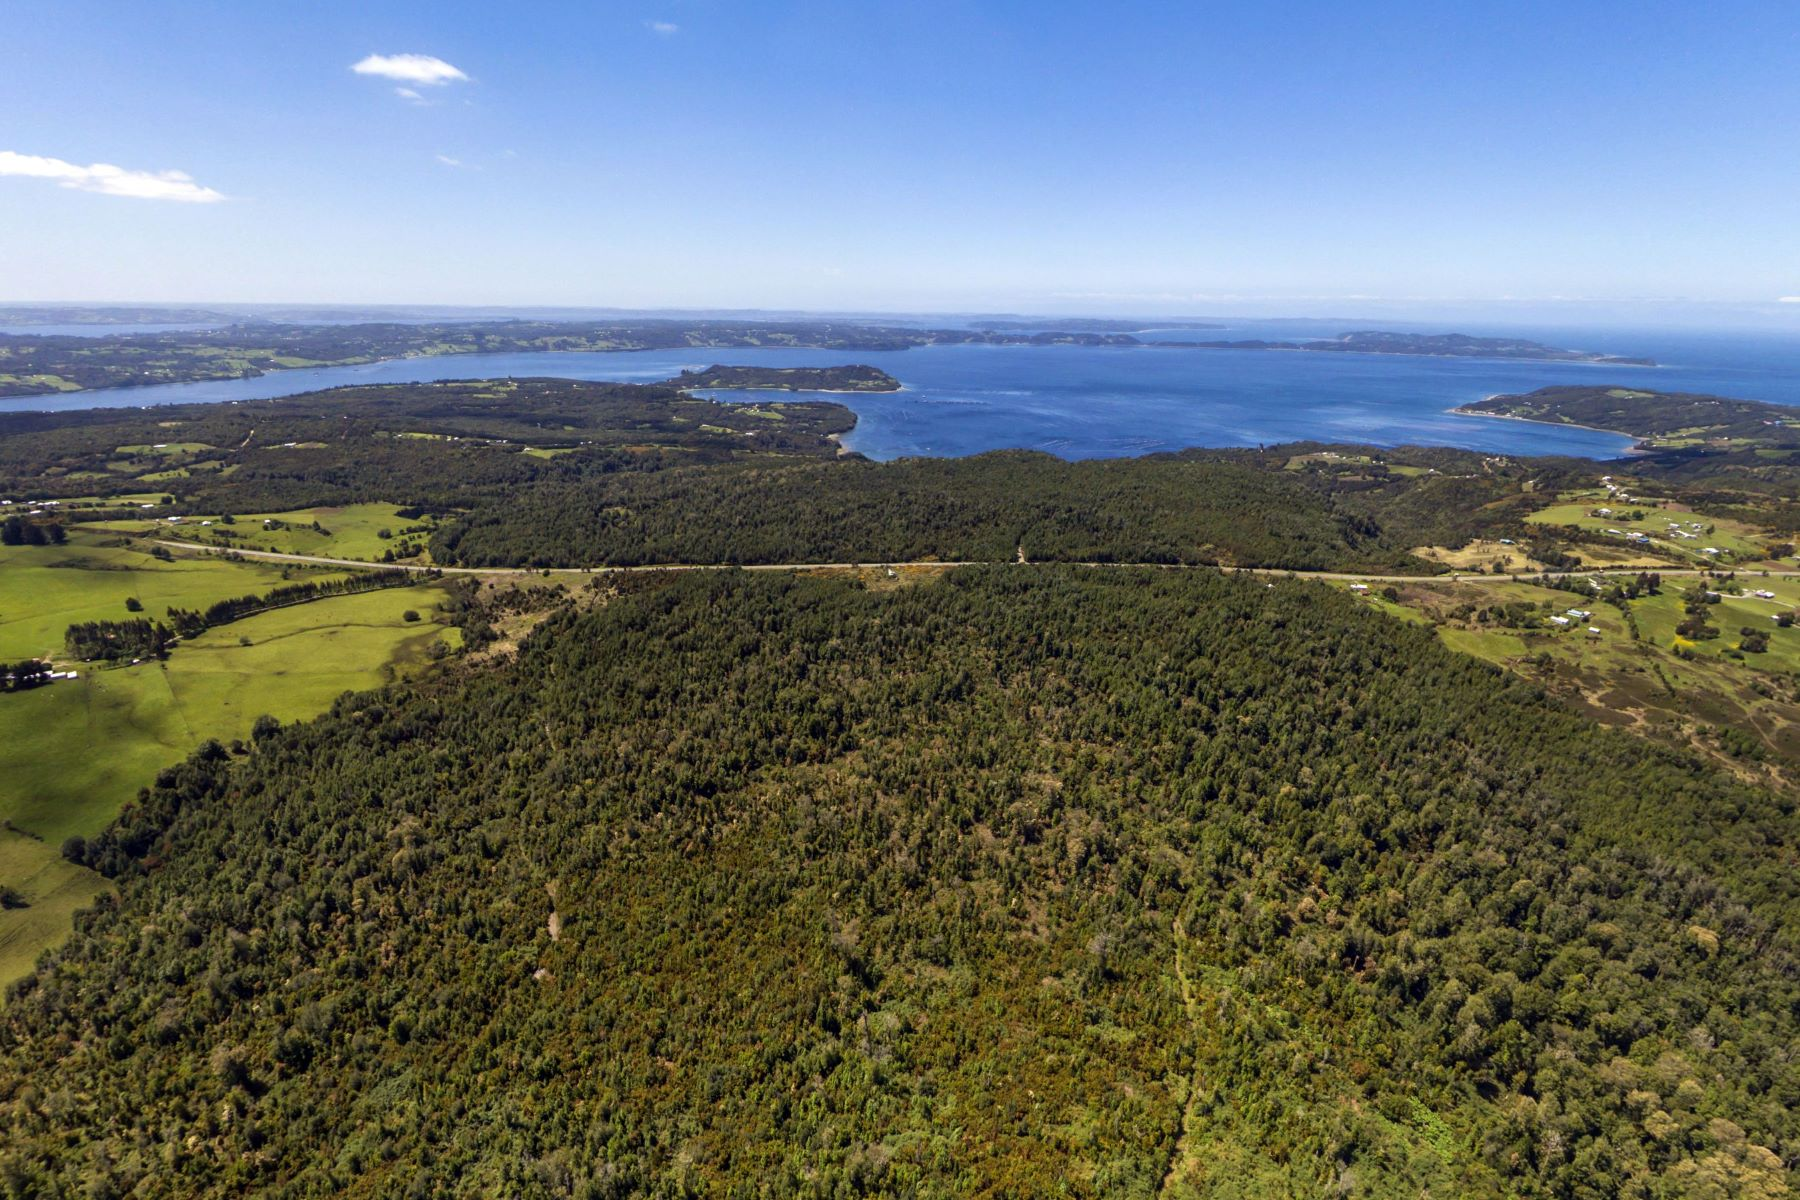 Land for Sale at Lots at Tarahuin Lake, Chonchi, Chiloé Castro, Los Lagos Chile